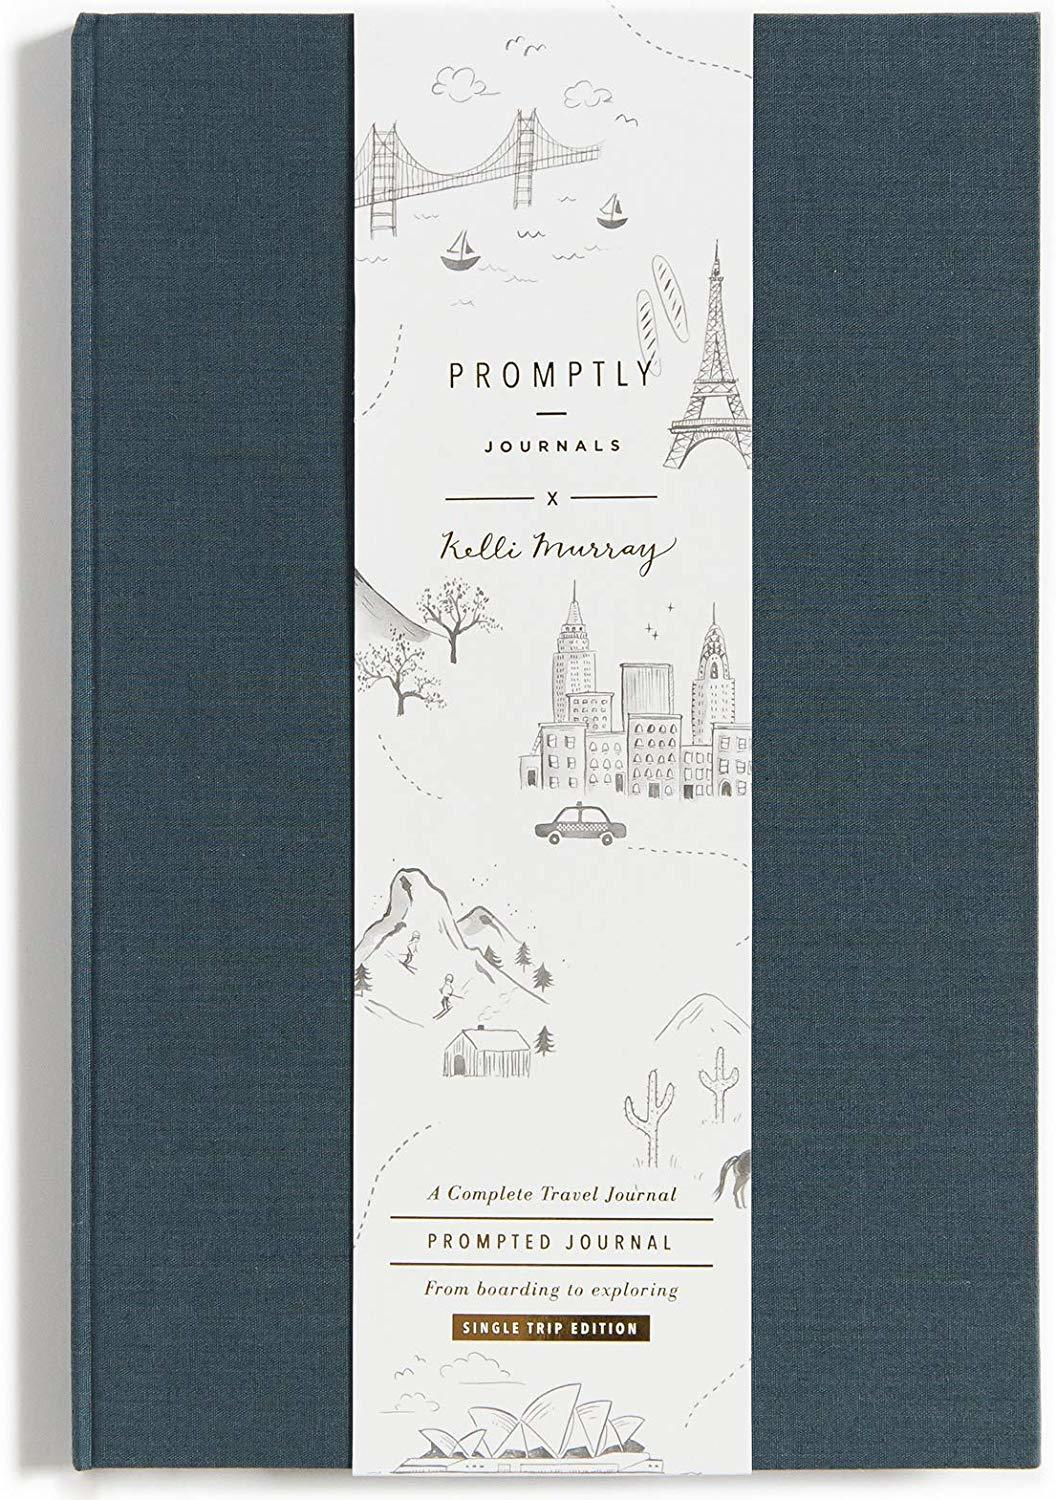 Travel Journal by Promptly Journals